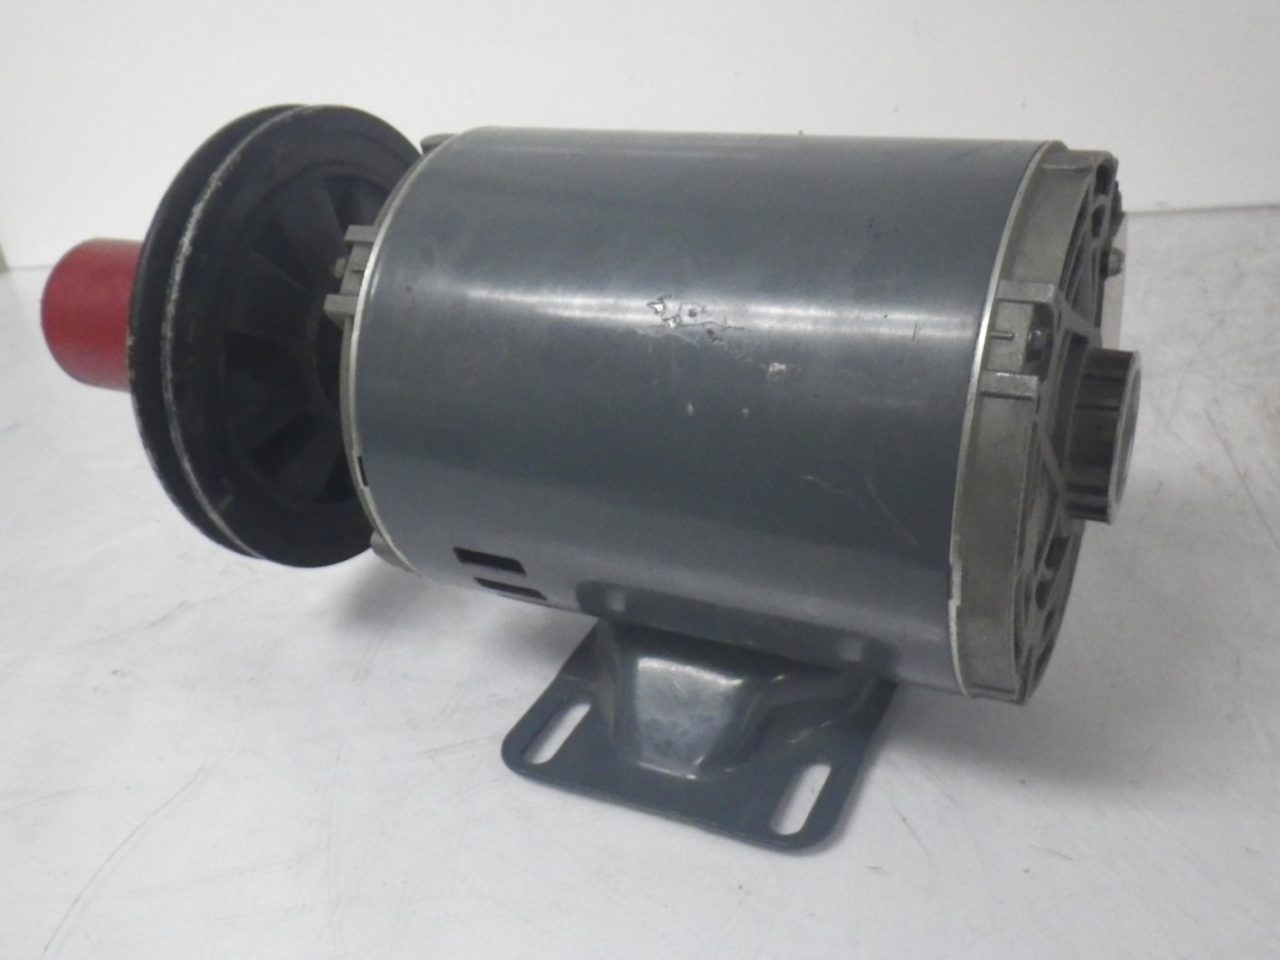 IMGP65595K36MN4B 160 58B GE Motor With LOVEJOY Pulley Type 160 58b 12hp 208-230460v 1725rpm (9)